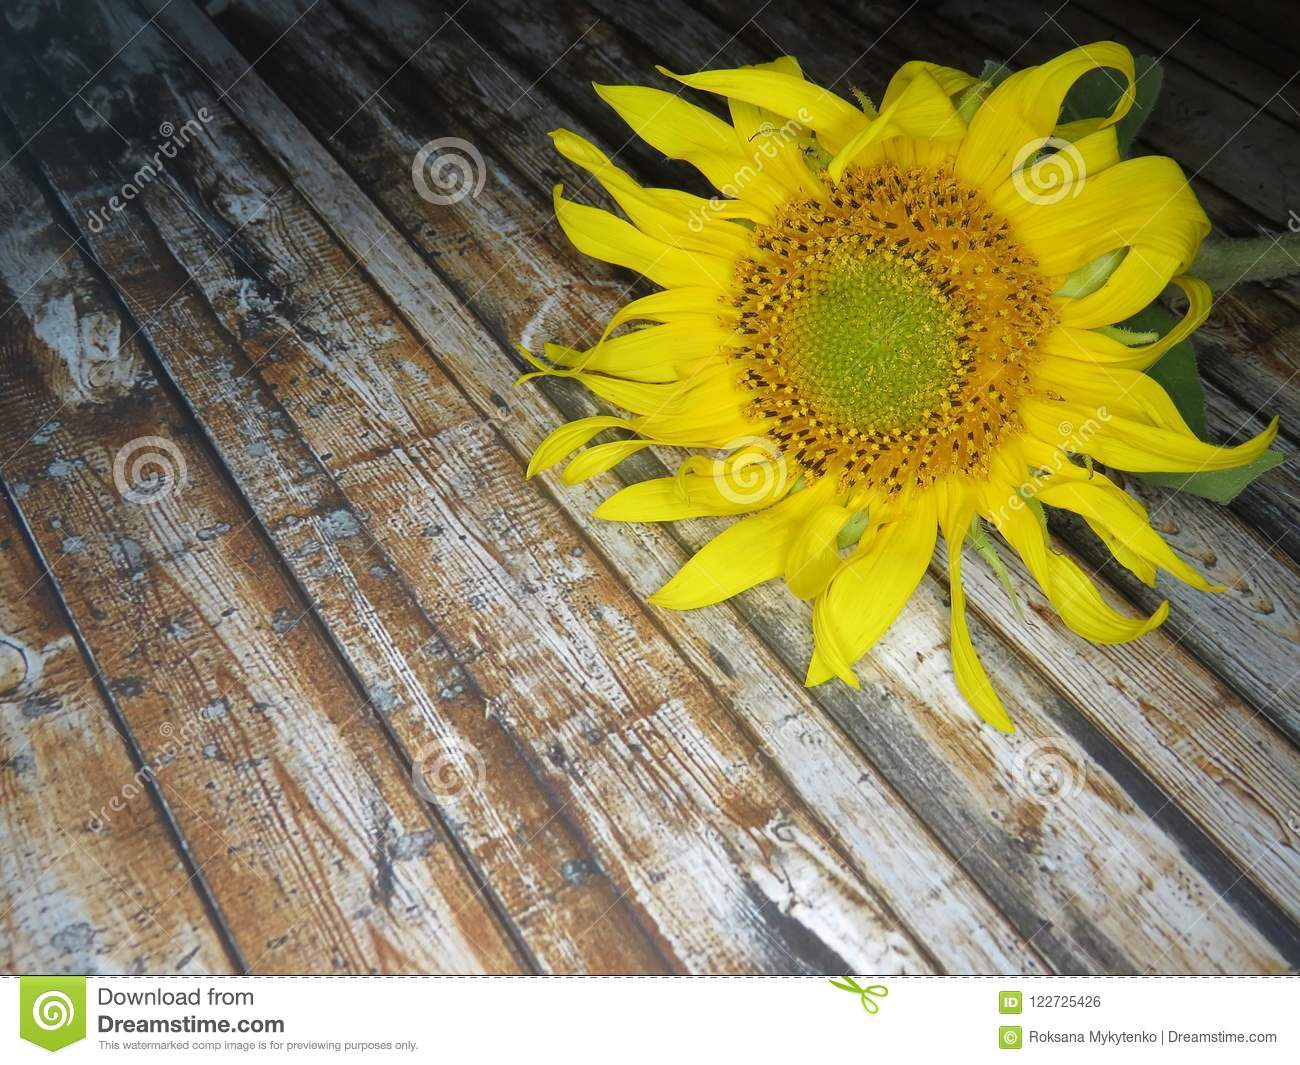 Straw Hat sunflowers on the table